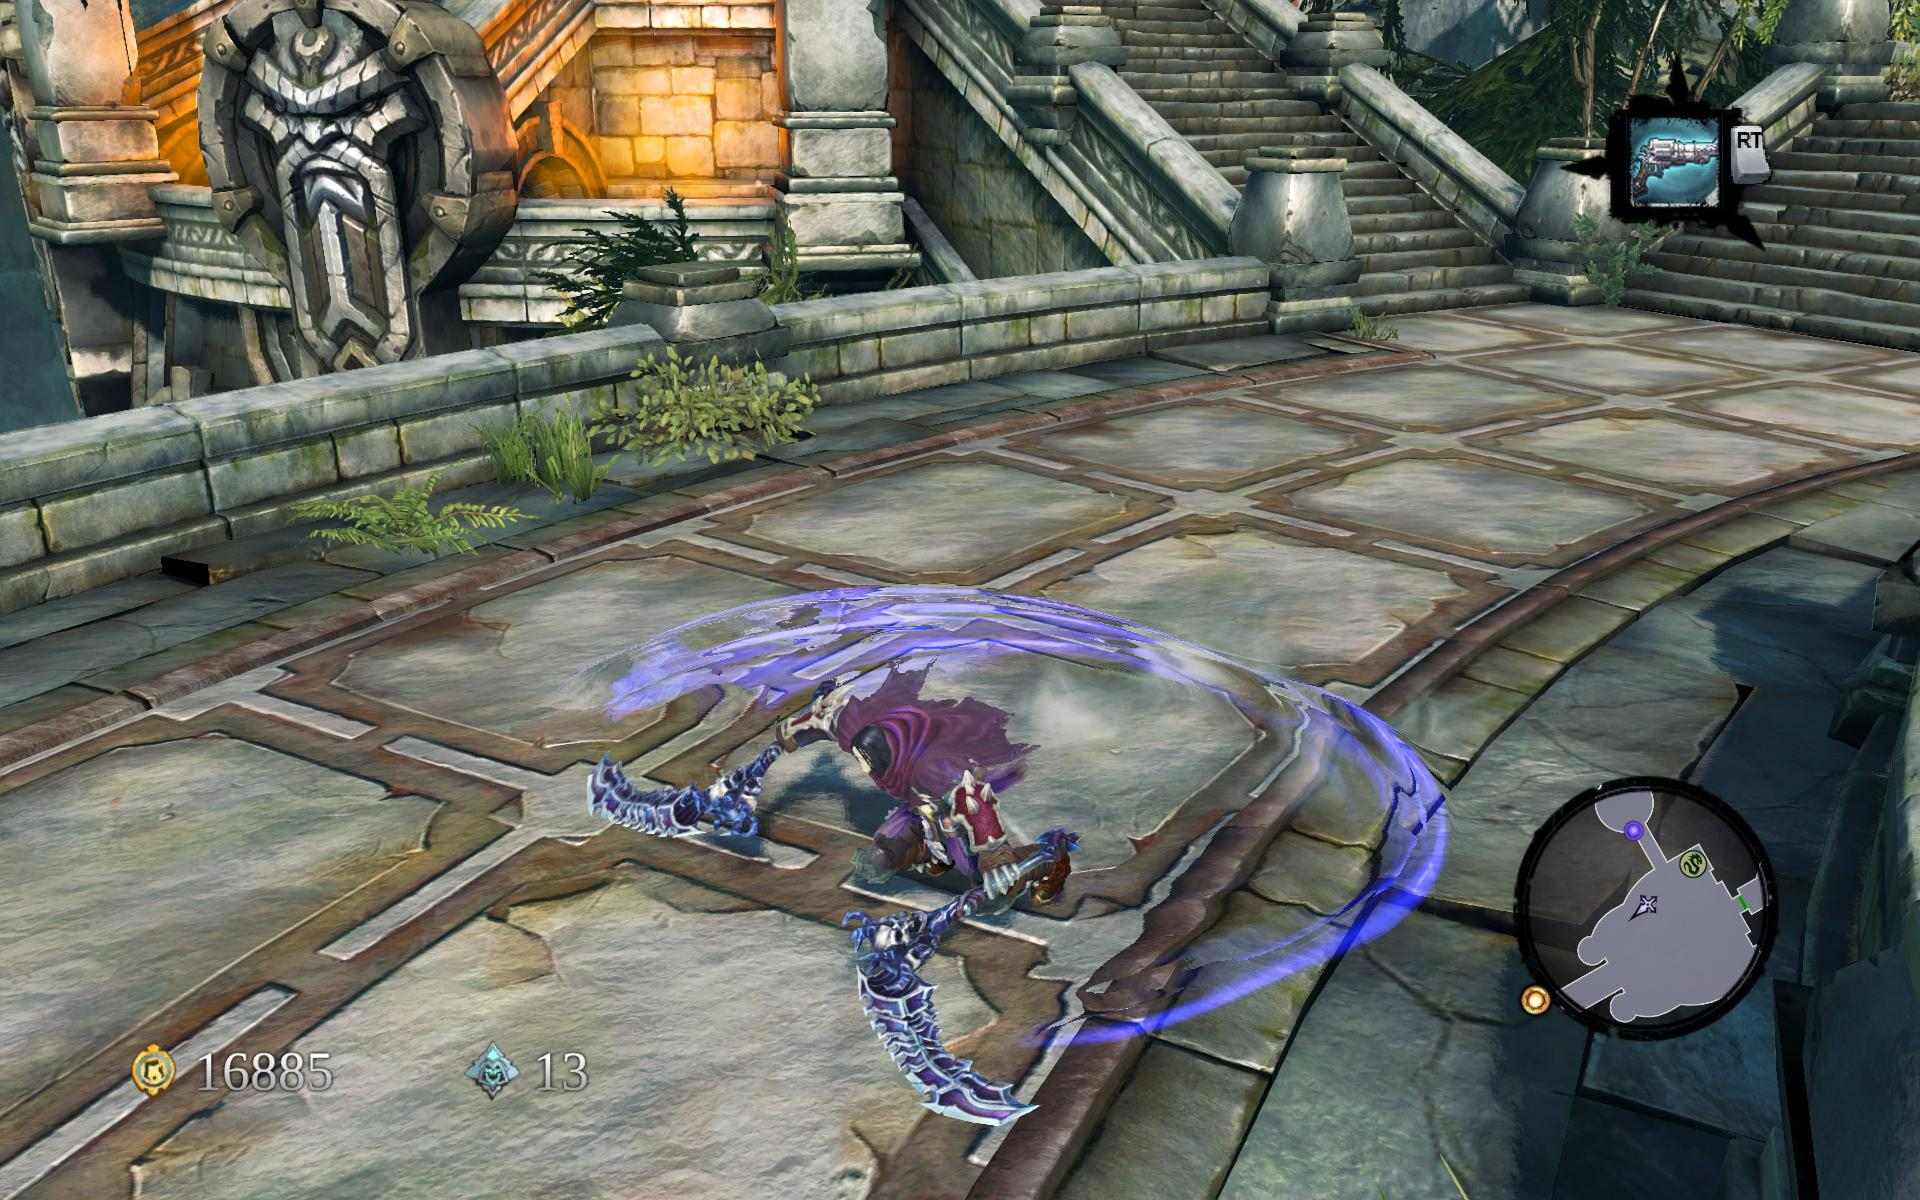 The controversial PC version of Darksiders II reviewed